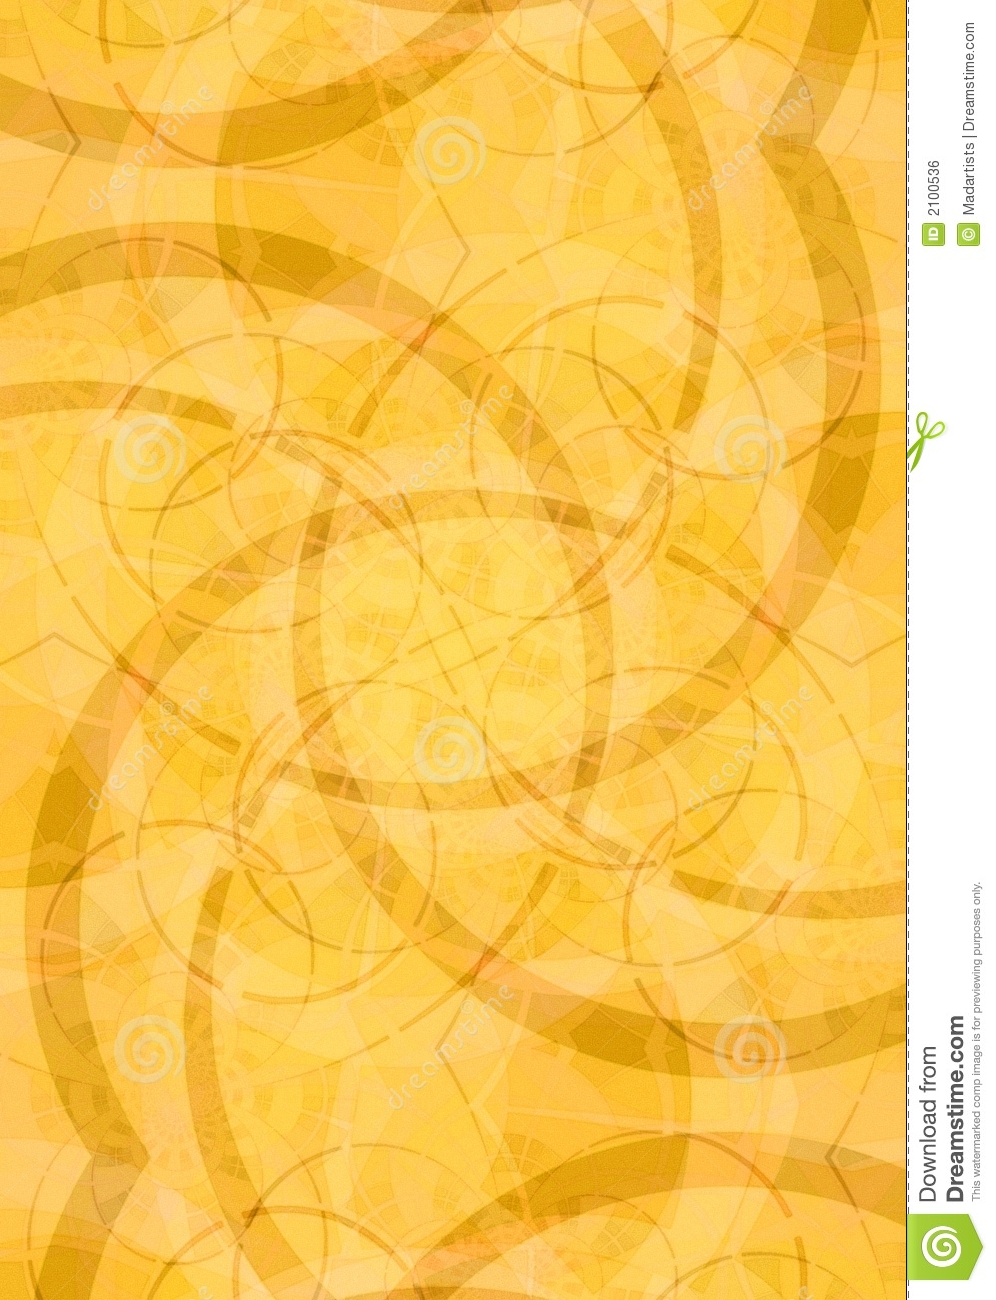 Abstract Backgrounds in Gold